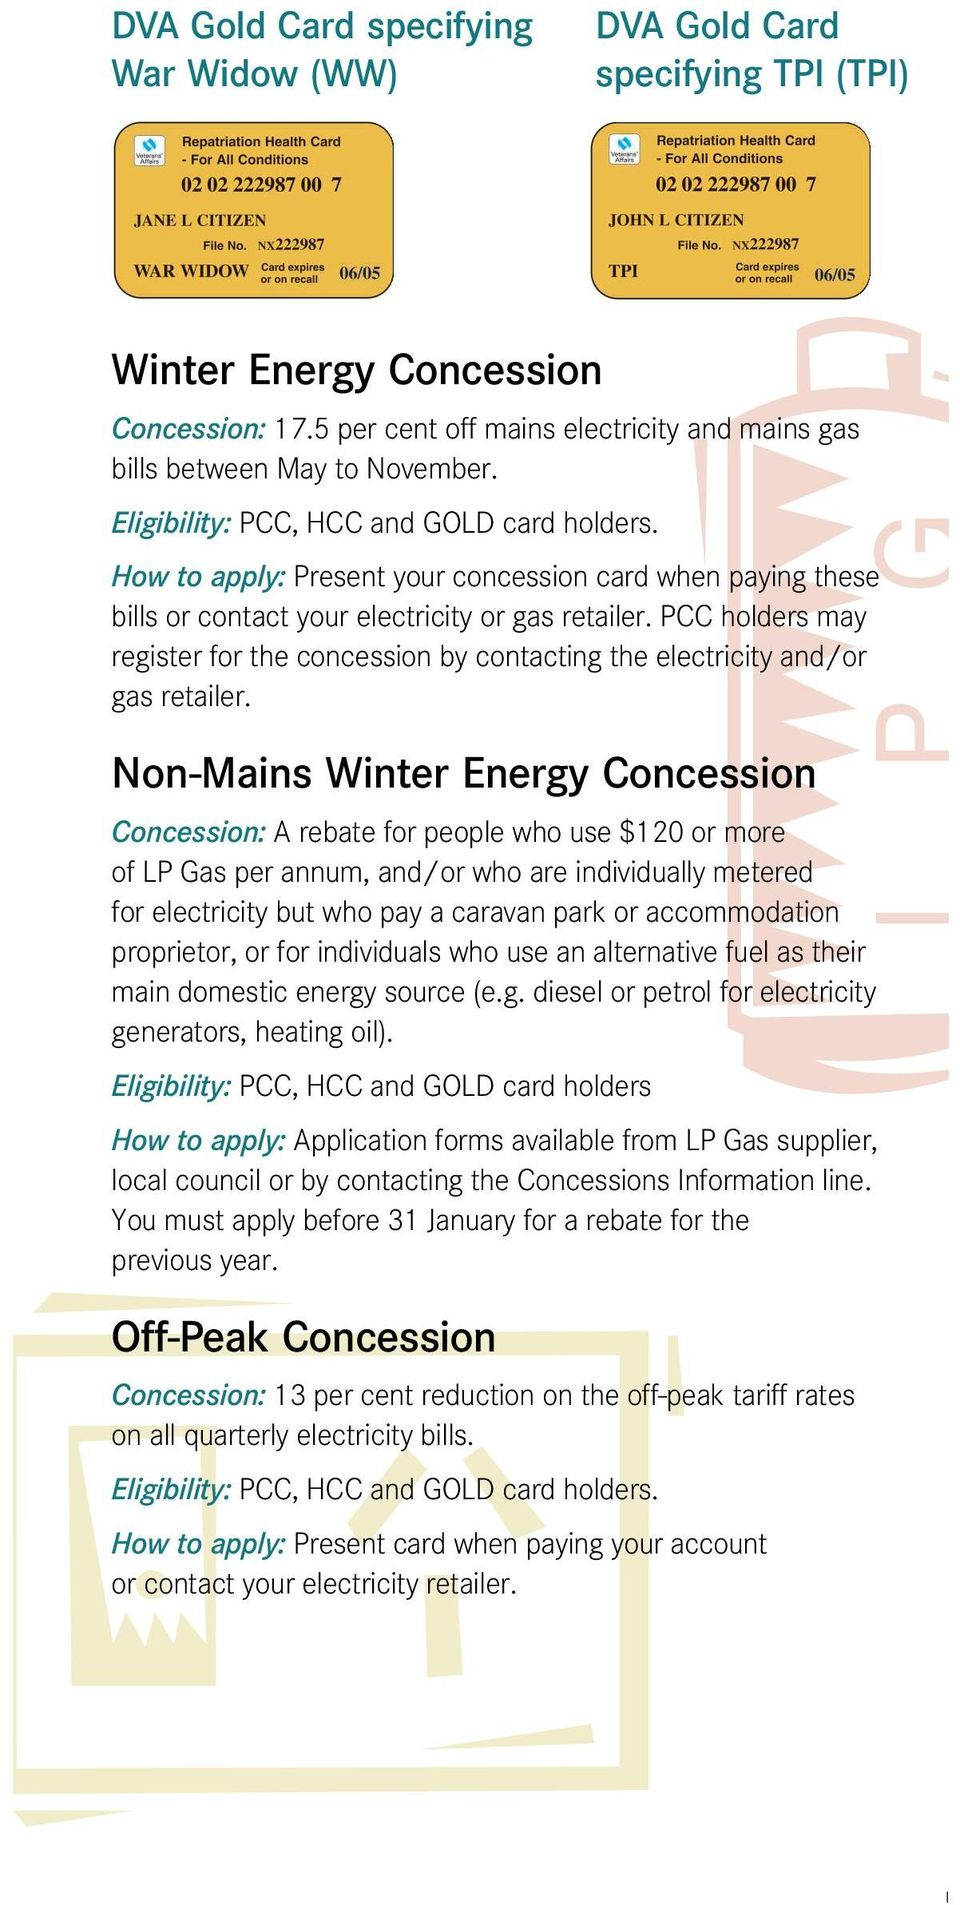 PCC holders may register for the concession by contacting the electricity and/or gas retailer.